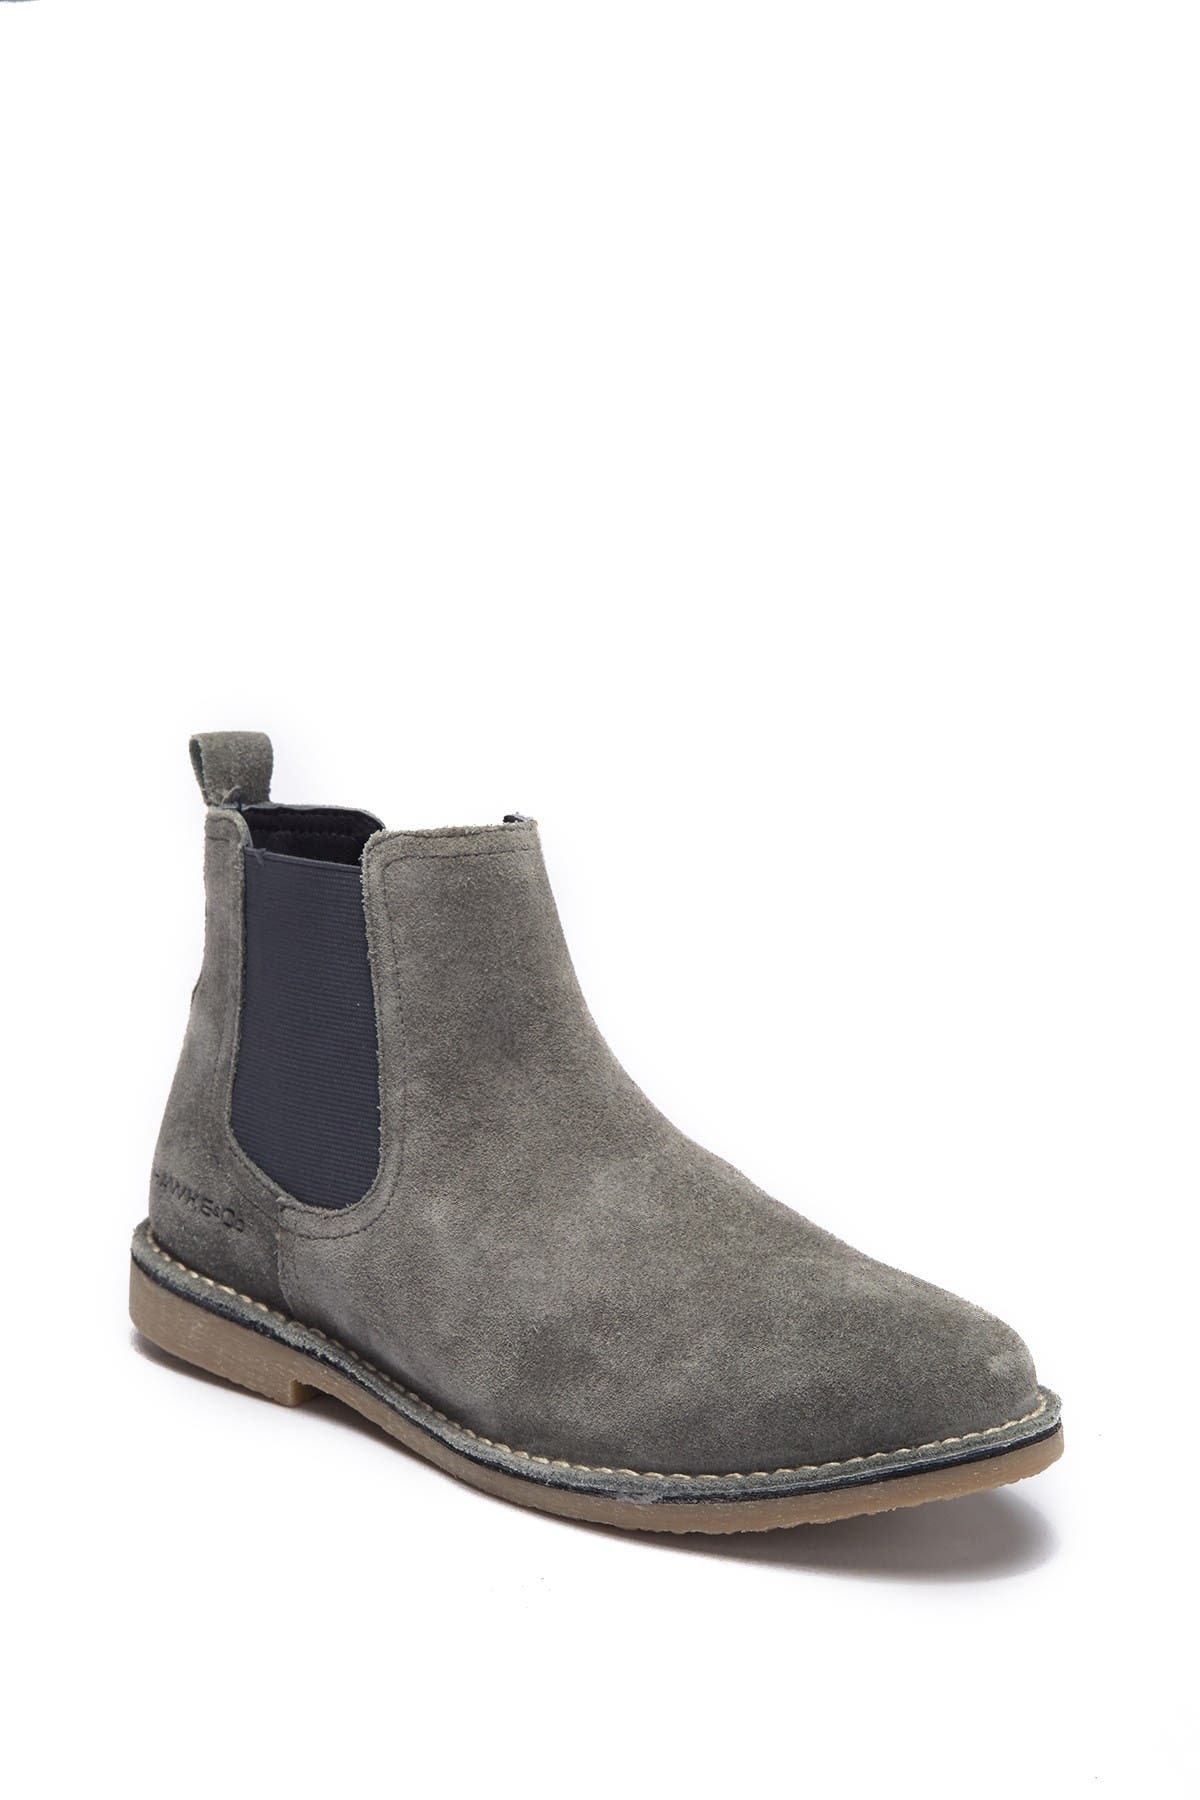 Image of Hawke & Co. Skylark Chelsea Boot